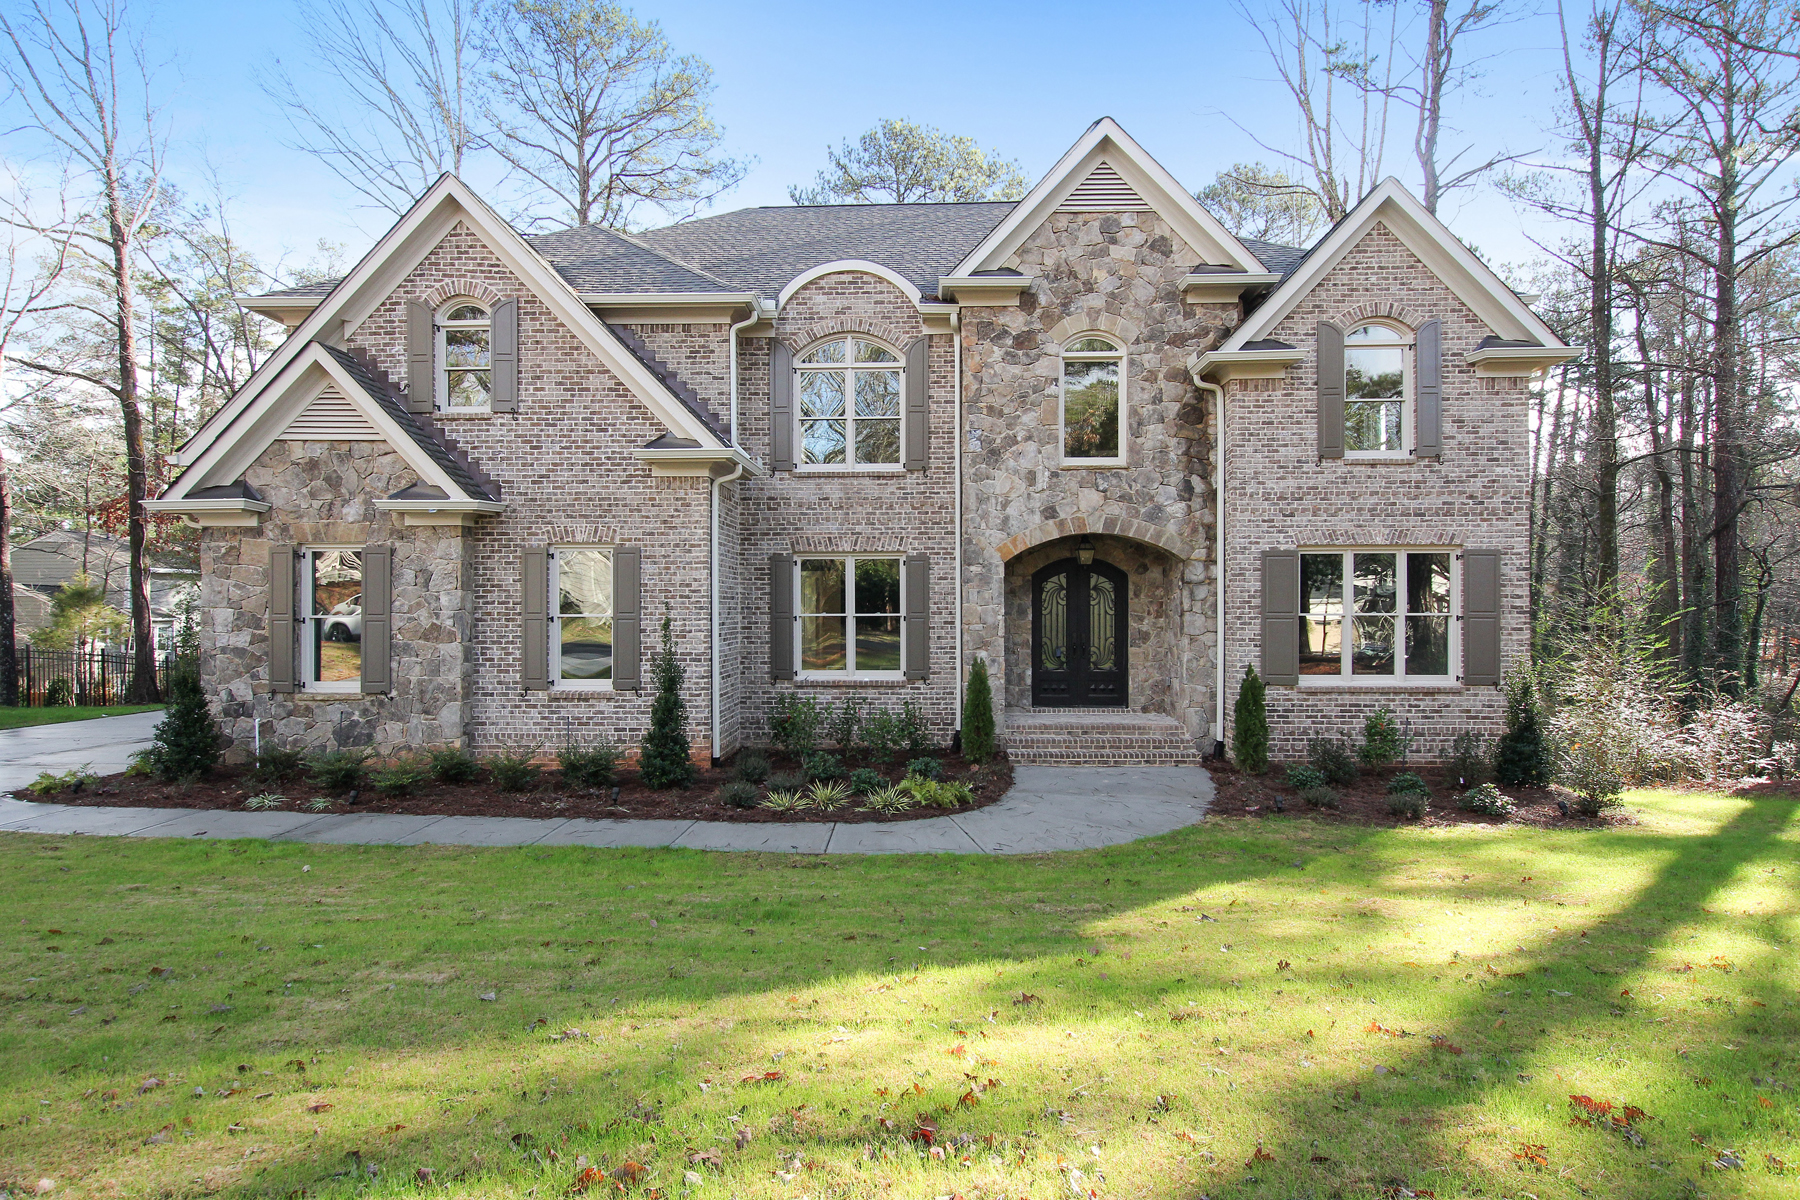 Vivienda unifamiliar por un Venta en New Construction Luxury Home, Convenient and Top Schools 1791 Greystone Court Marietta, Georgia, 30068 Estados Unidos